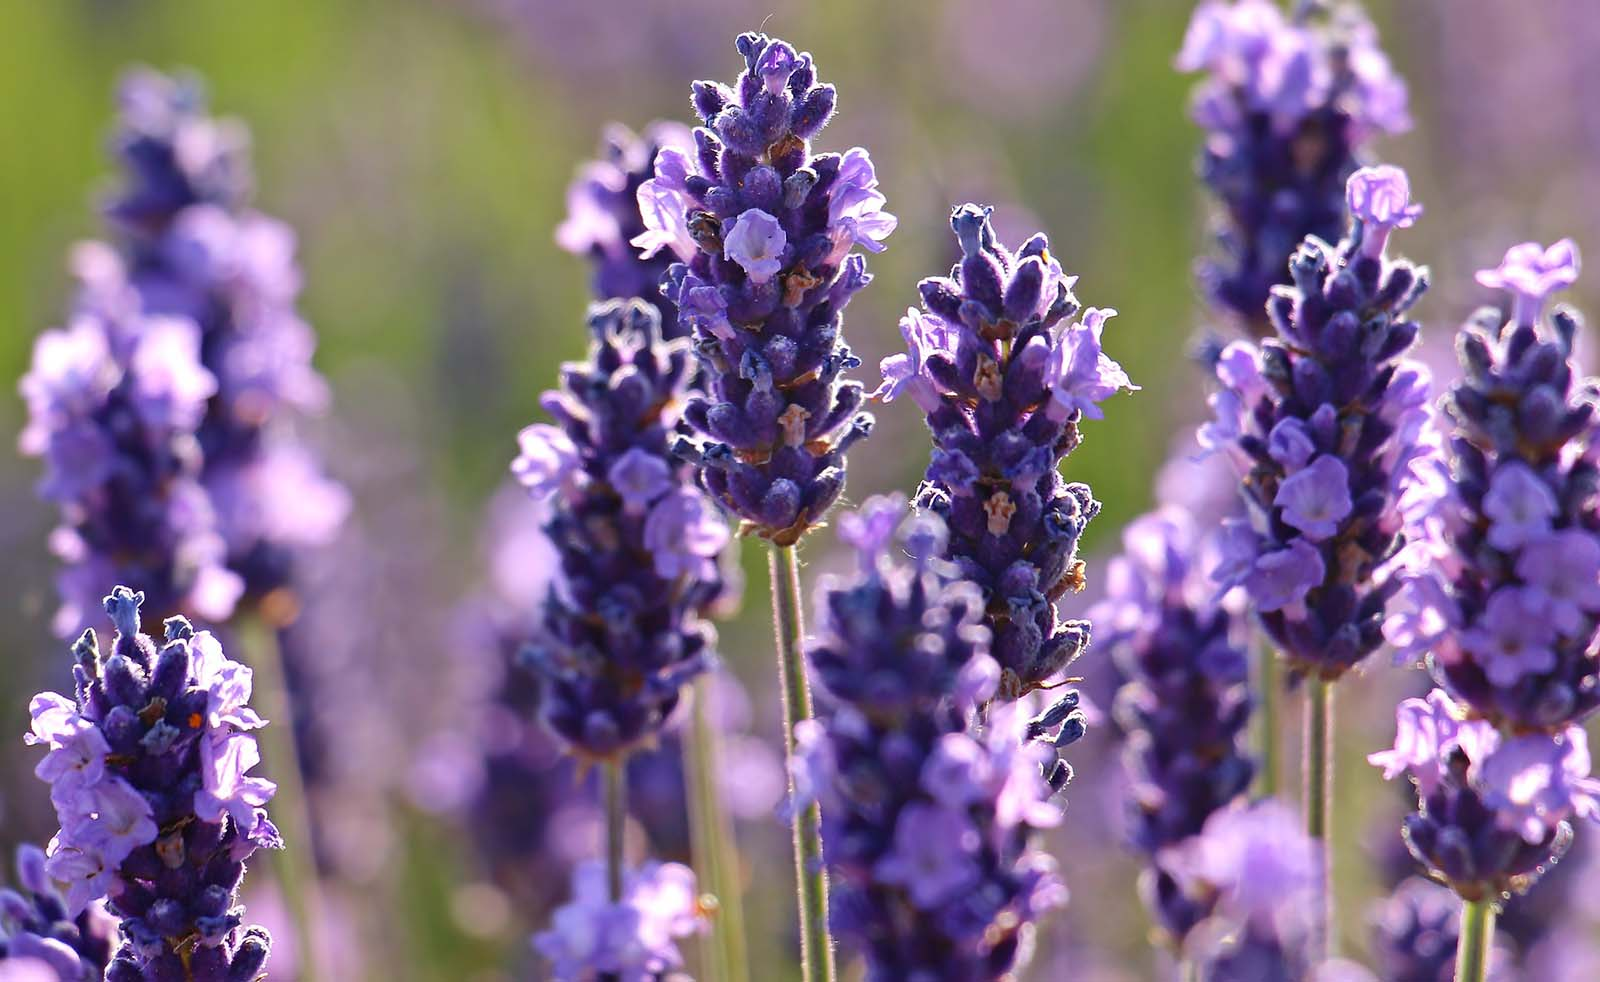 Sekhmet Healing Ancient Plant Medicine for Modern Day ailments. Lavender flowers help you sleep.